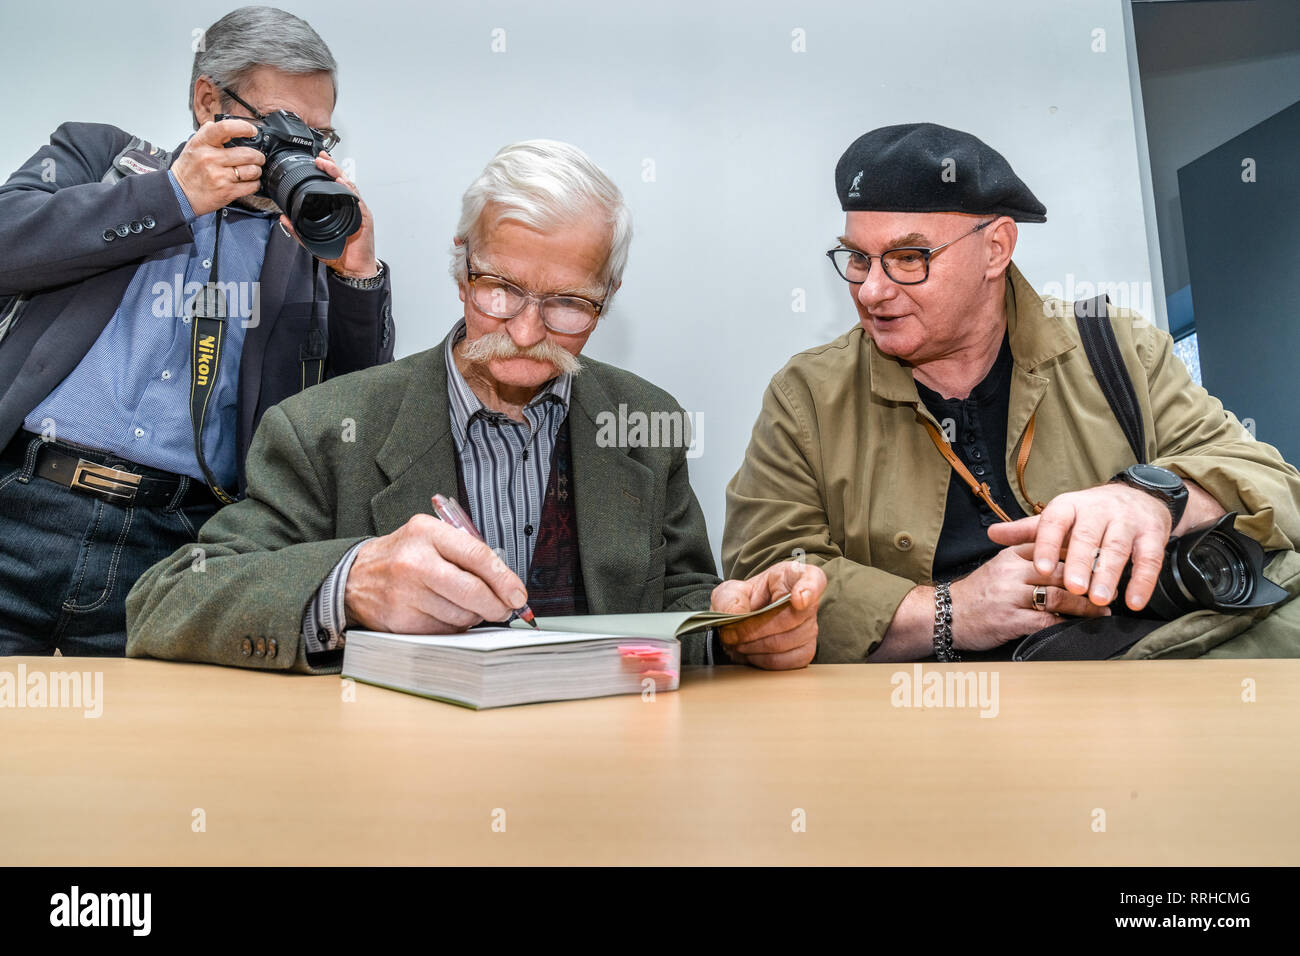 The international Vilnius Book Fair. H.Gudavičius (middle) author of the book about nature signs an autograph for the photographer A.Aleksandravičius - Stock Image